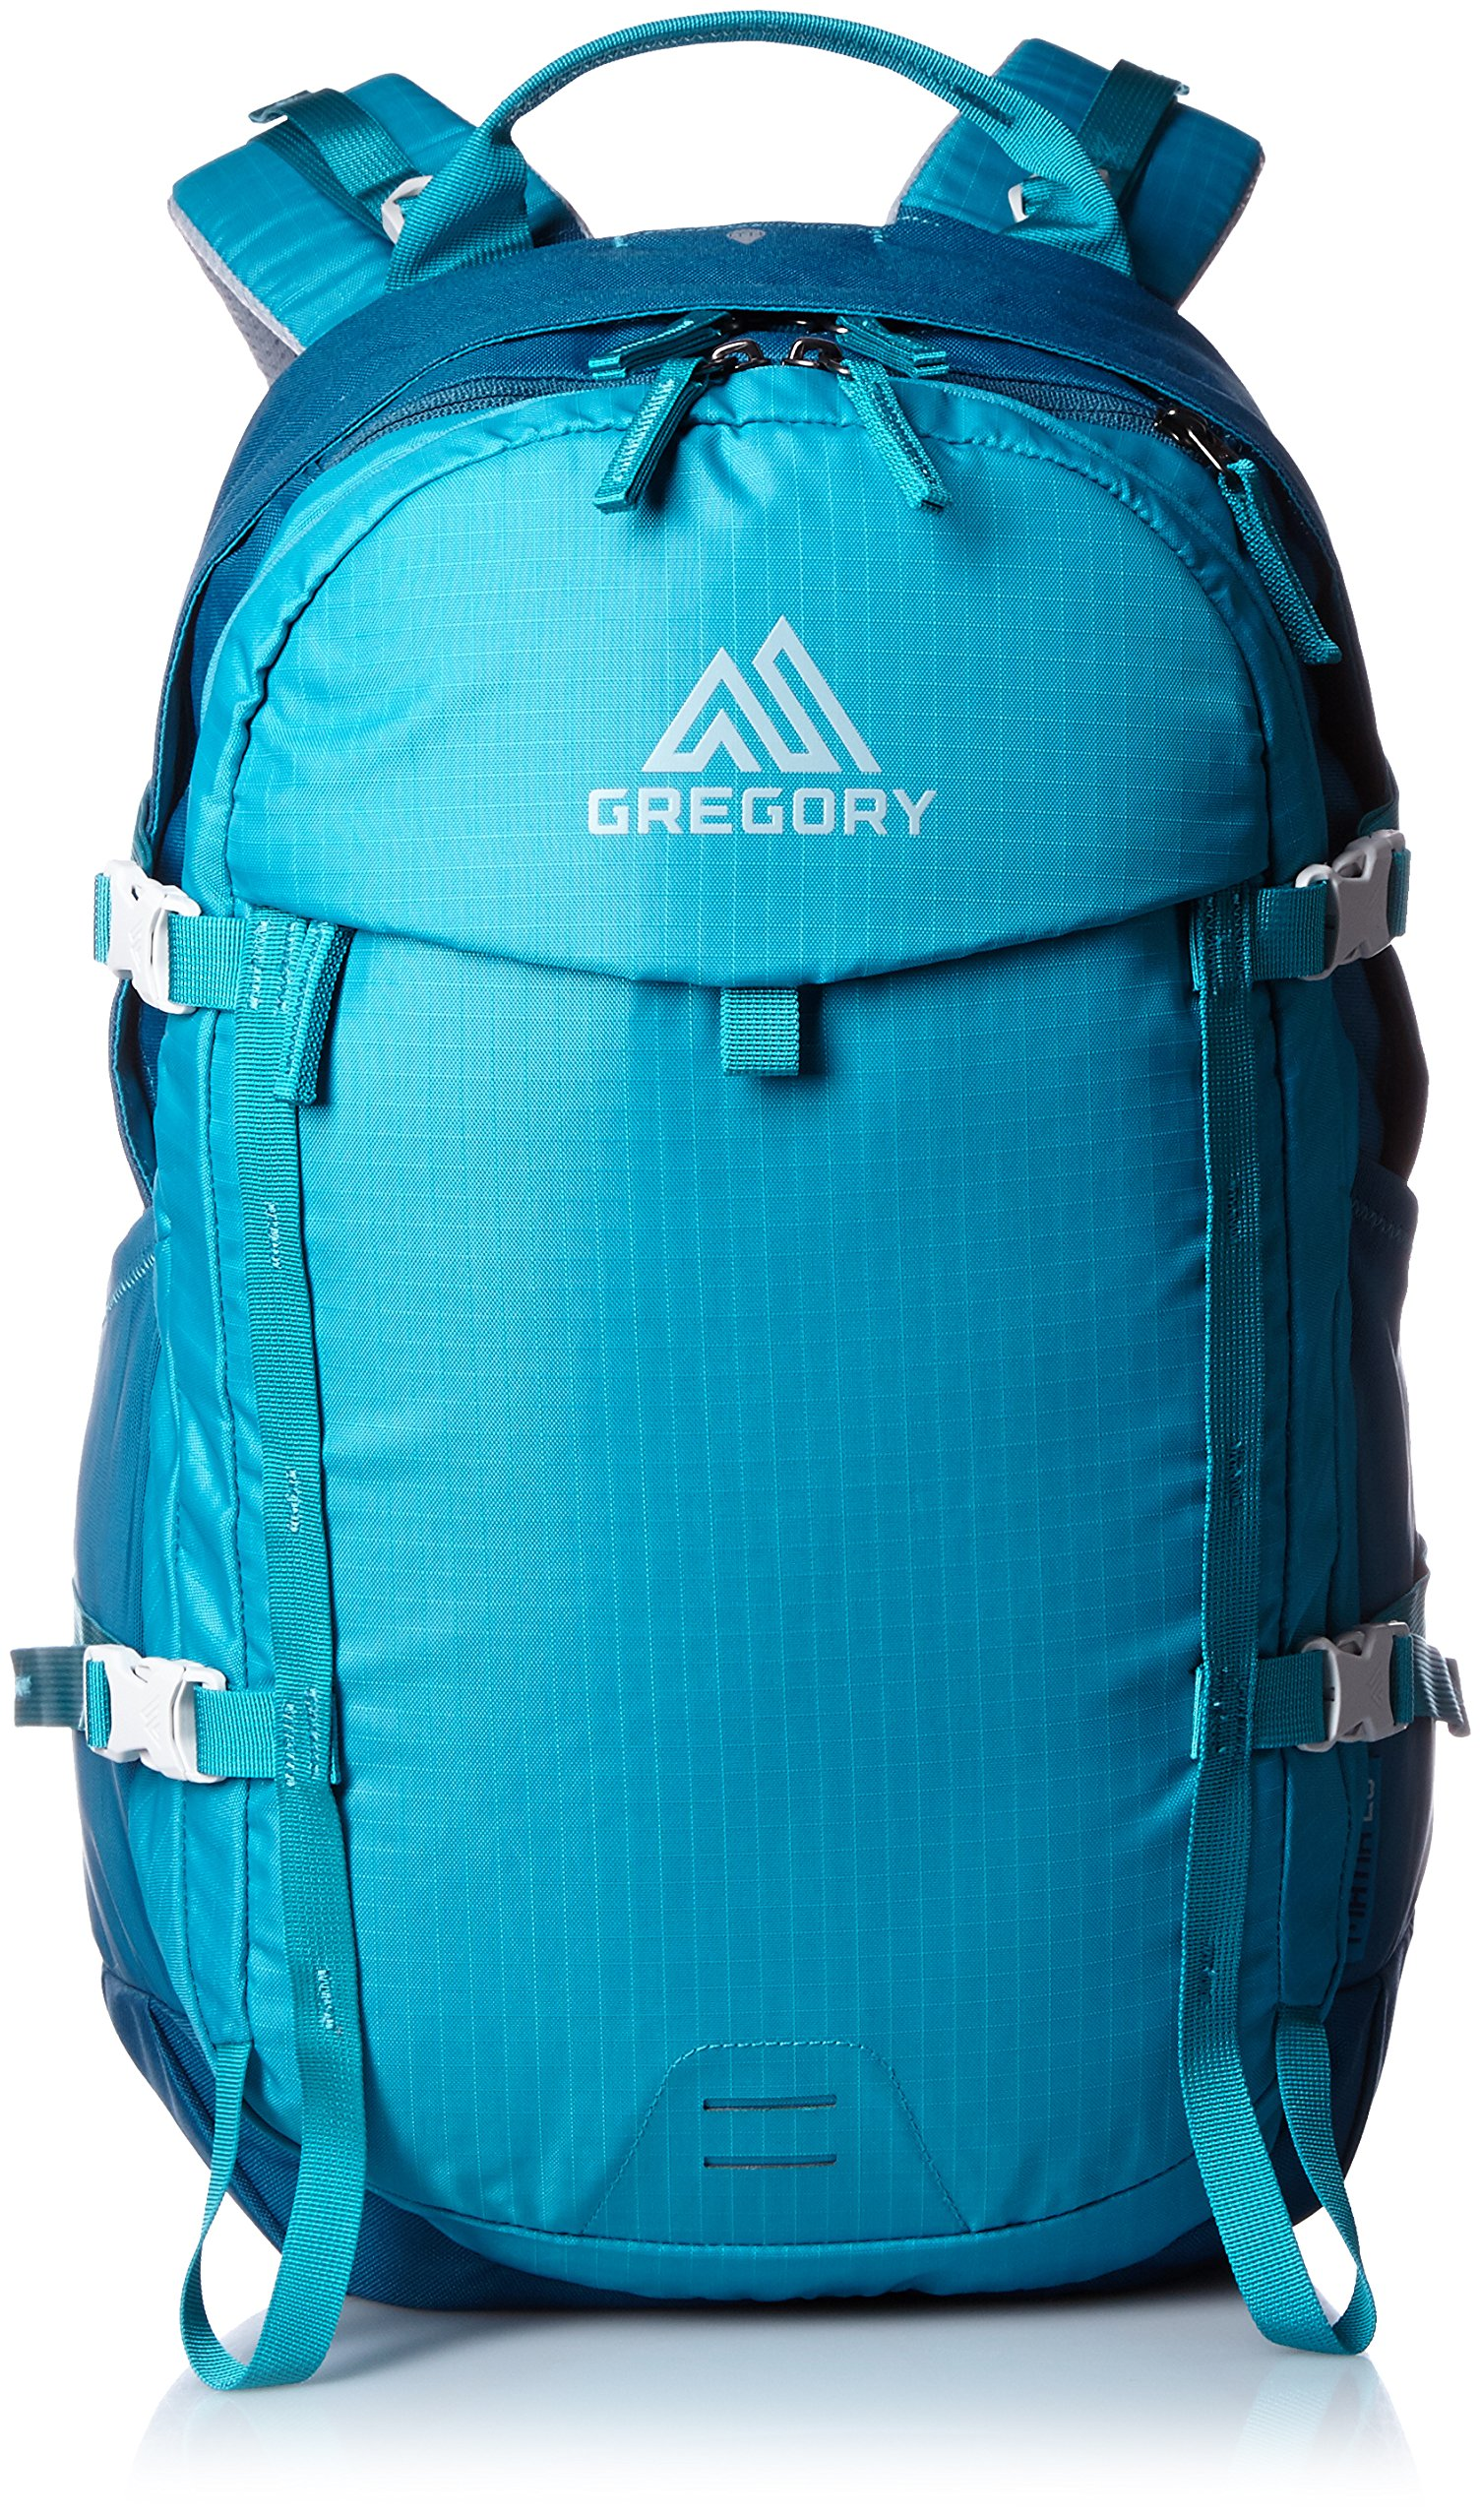 Gregory Matia 28, One Size, Deep Turquoise